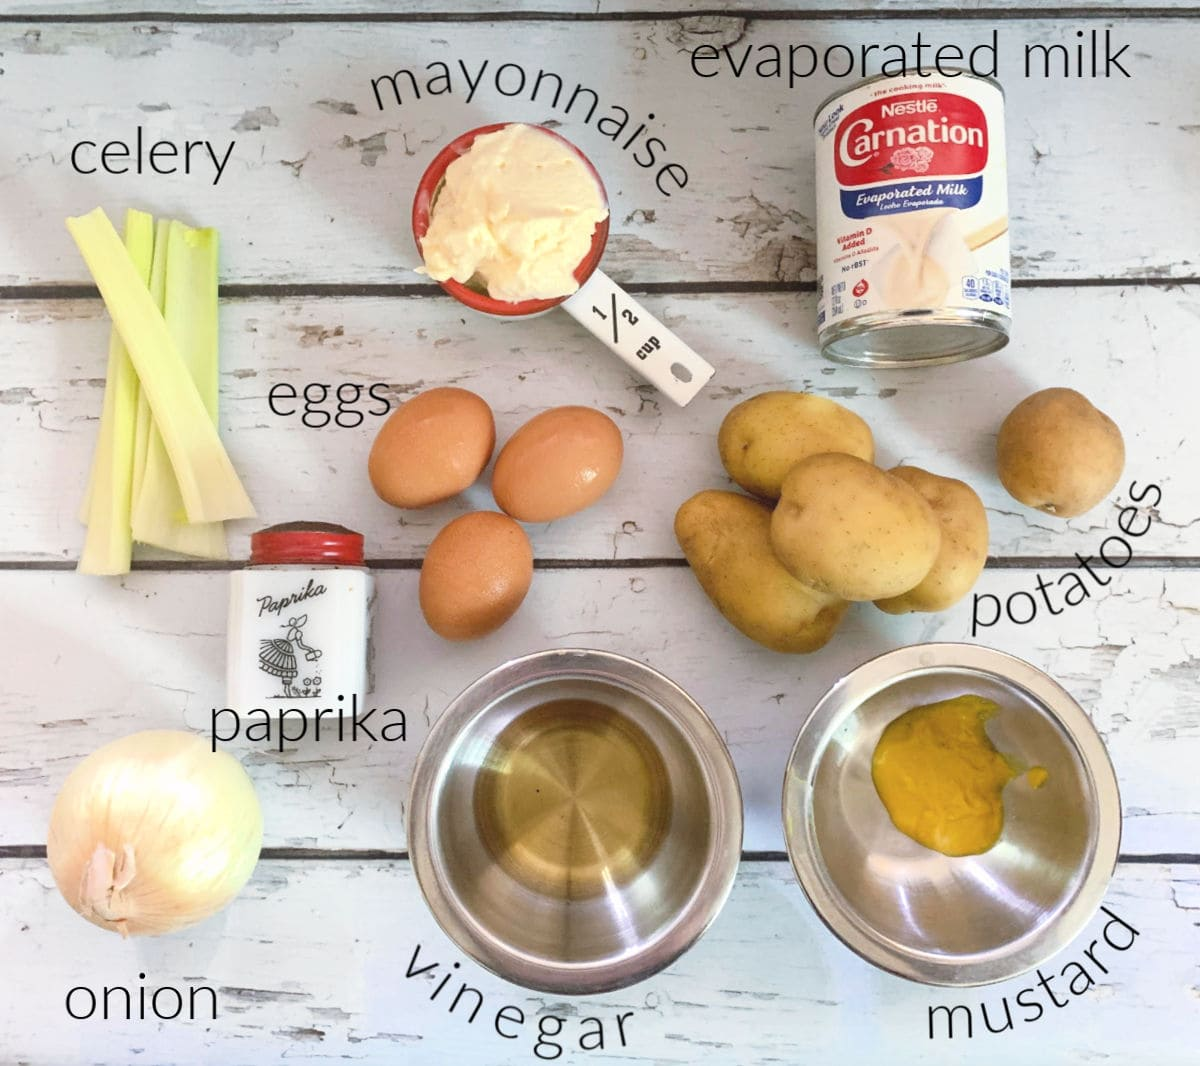 Labeled ingredients for potato salad.